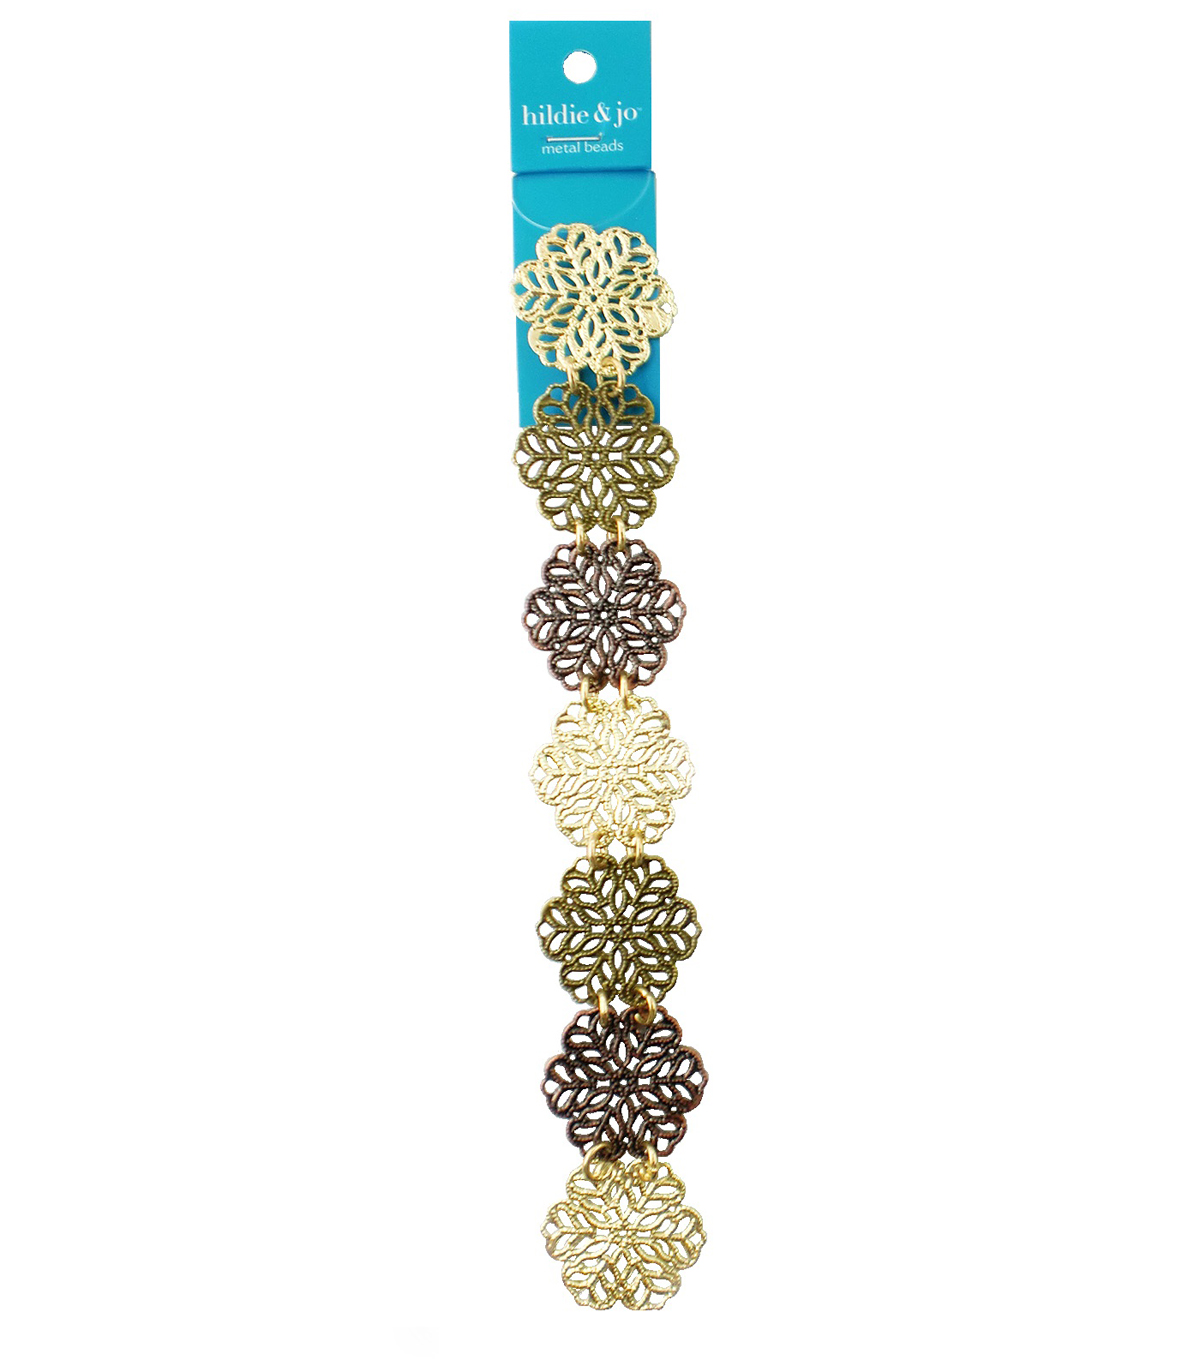 hildie & jo™ 7\u0027\u0027 Open Snowflake Strand-Gold, Antique Gold & Brass